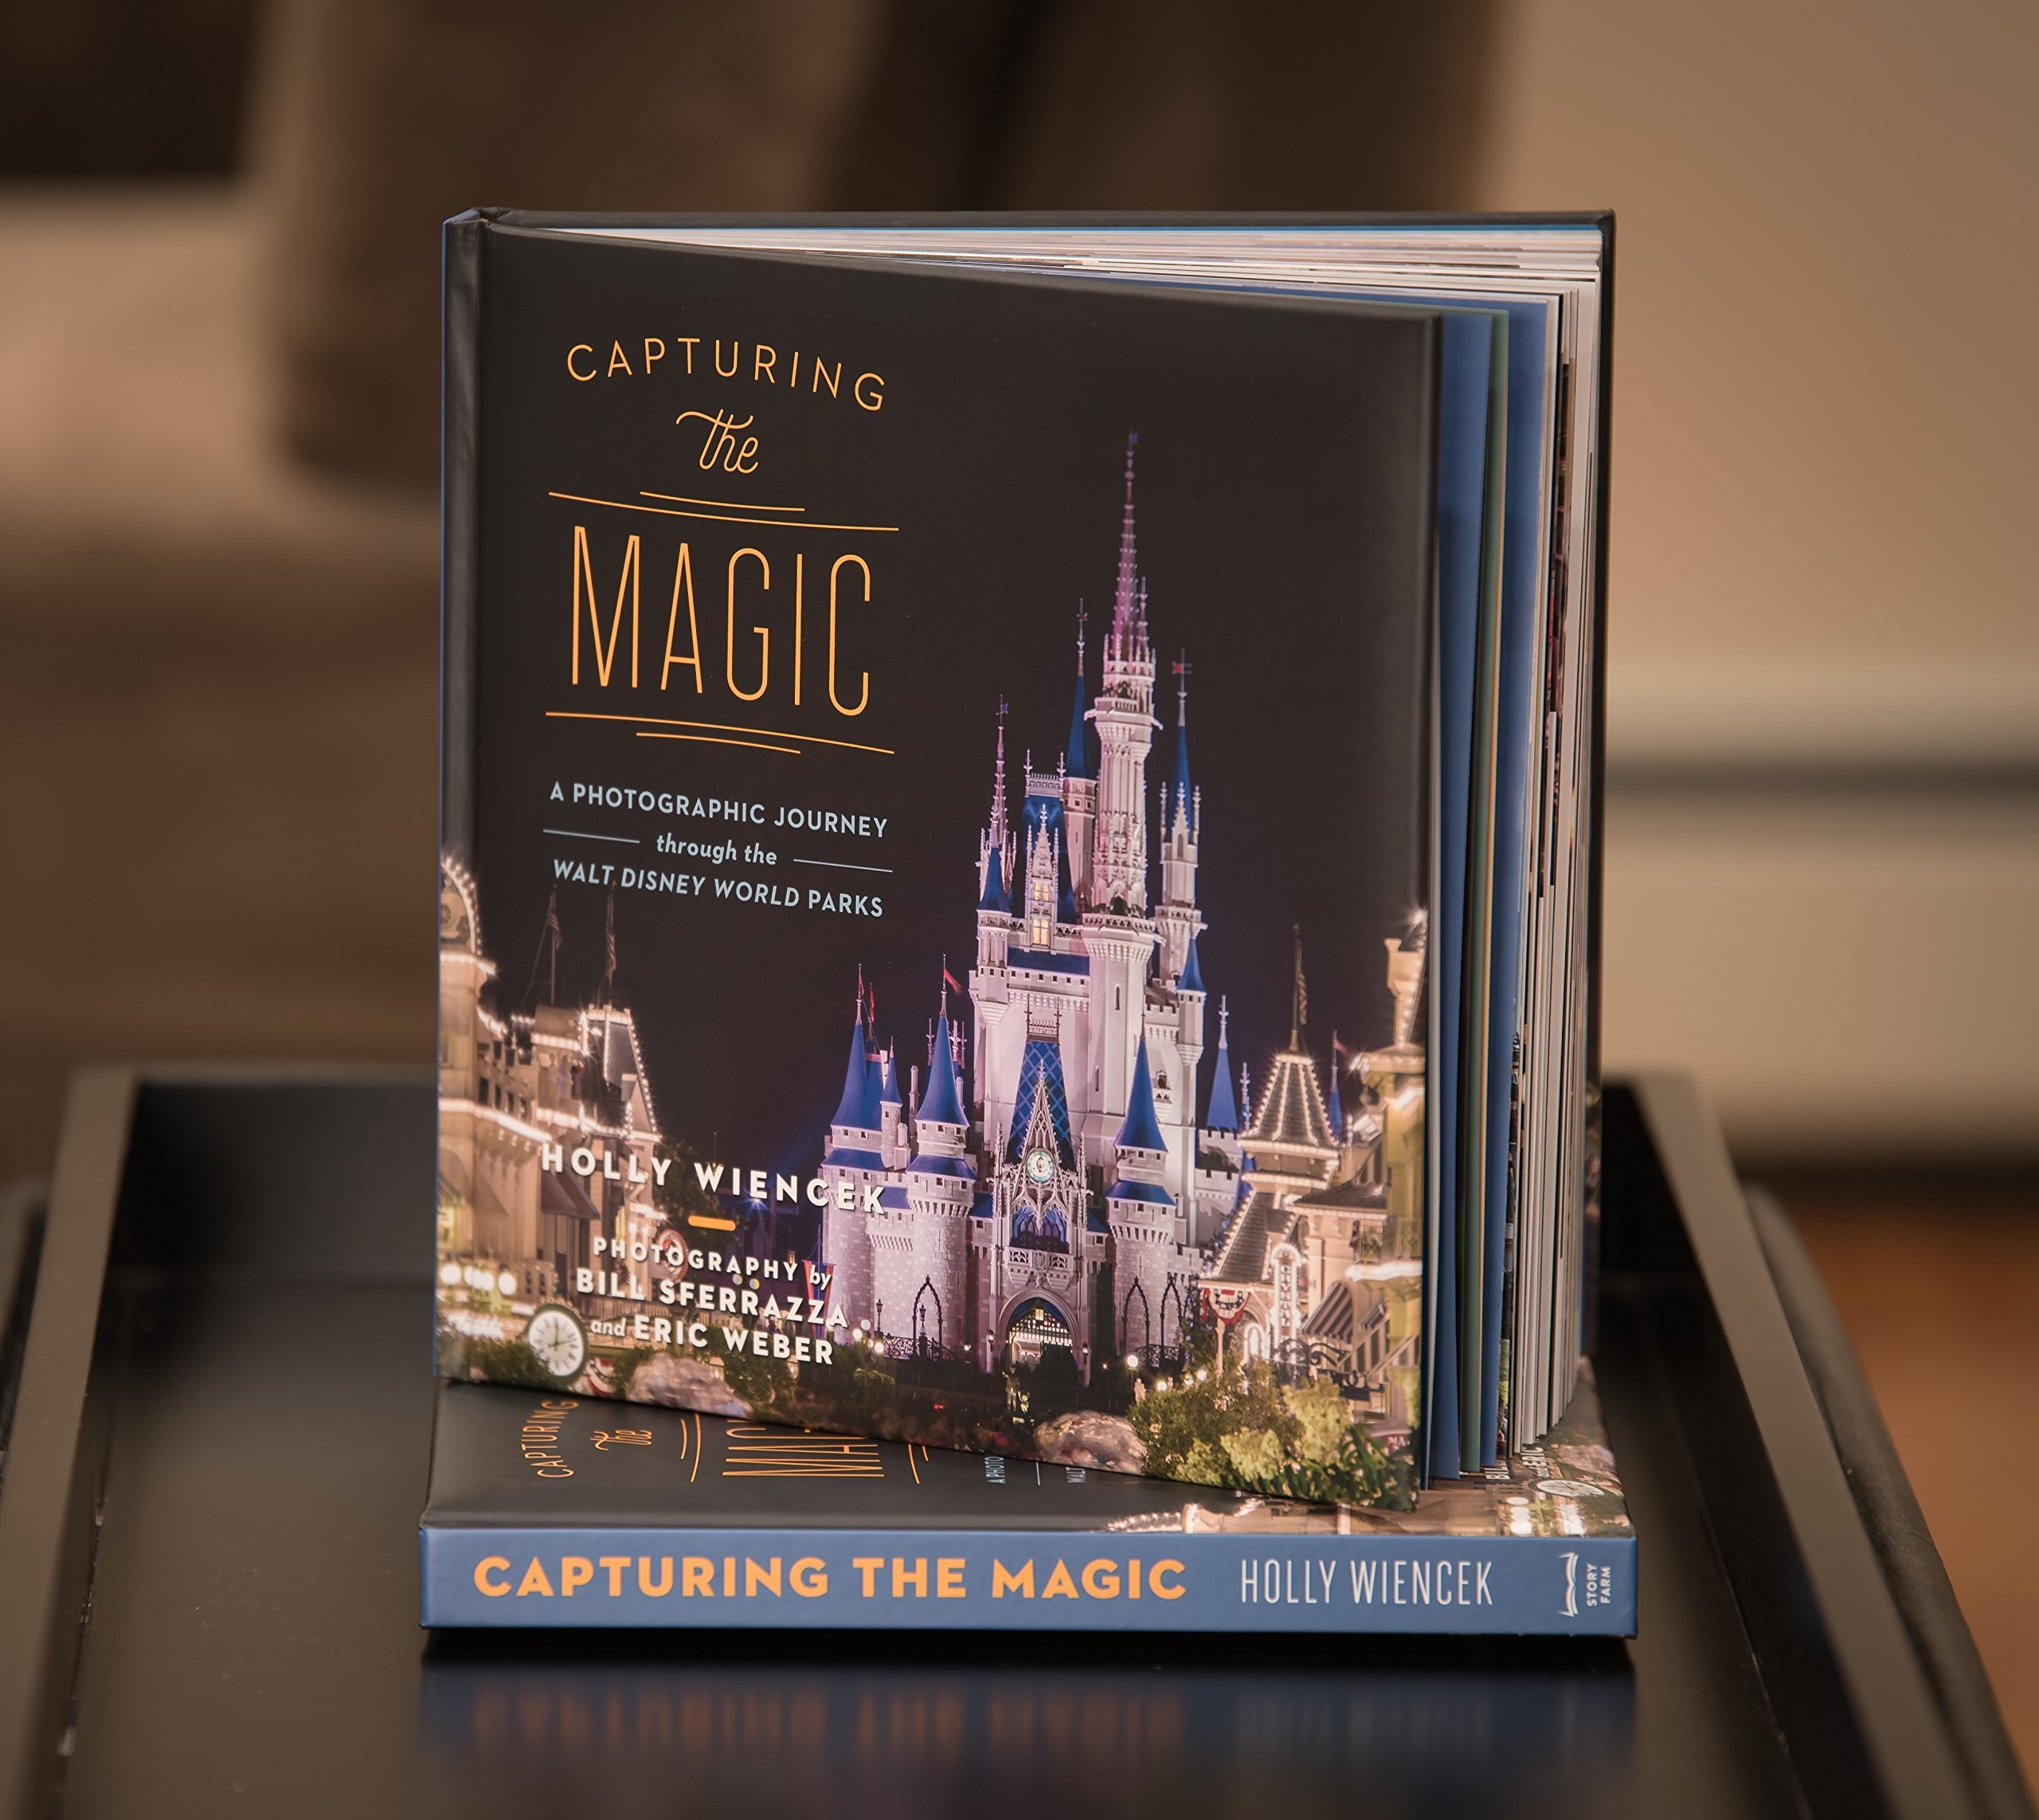 Capturing the Magic A Photographic Journey Through the Walt